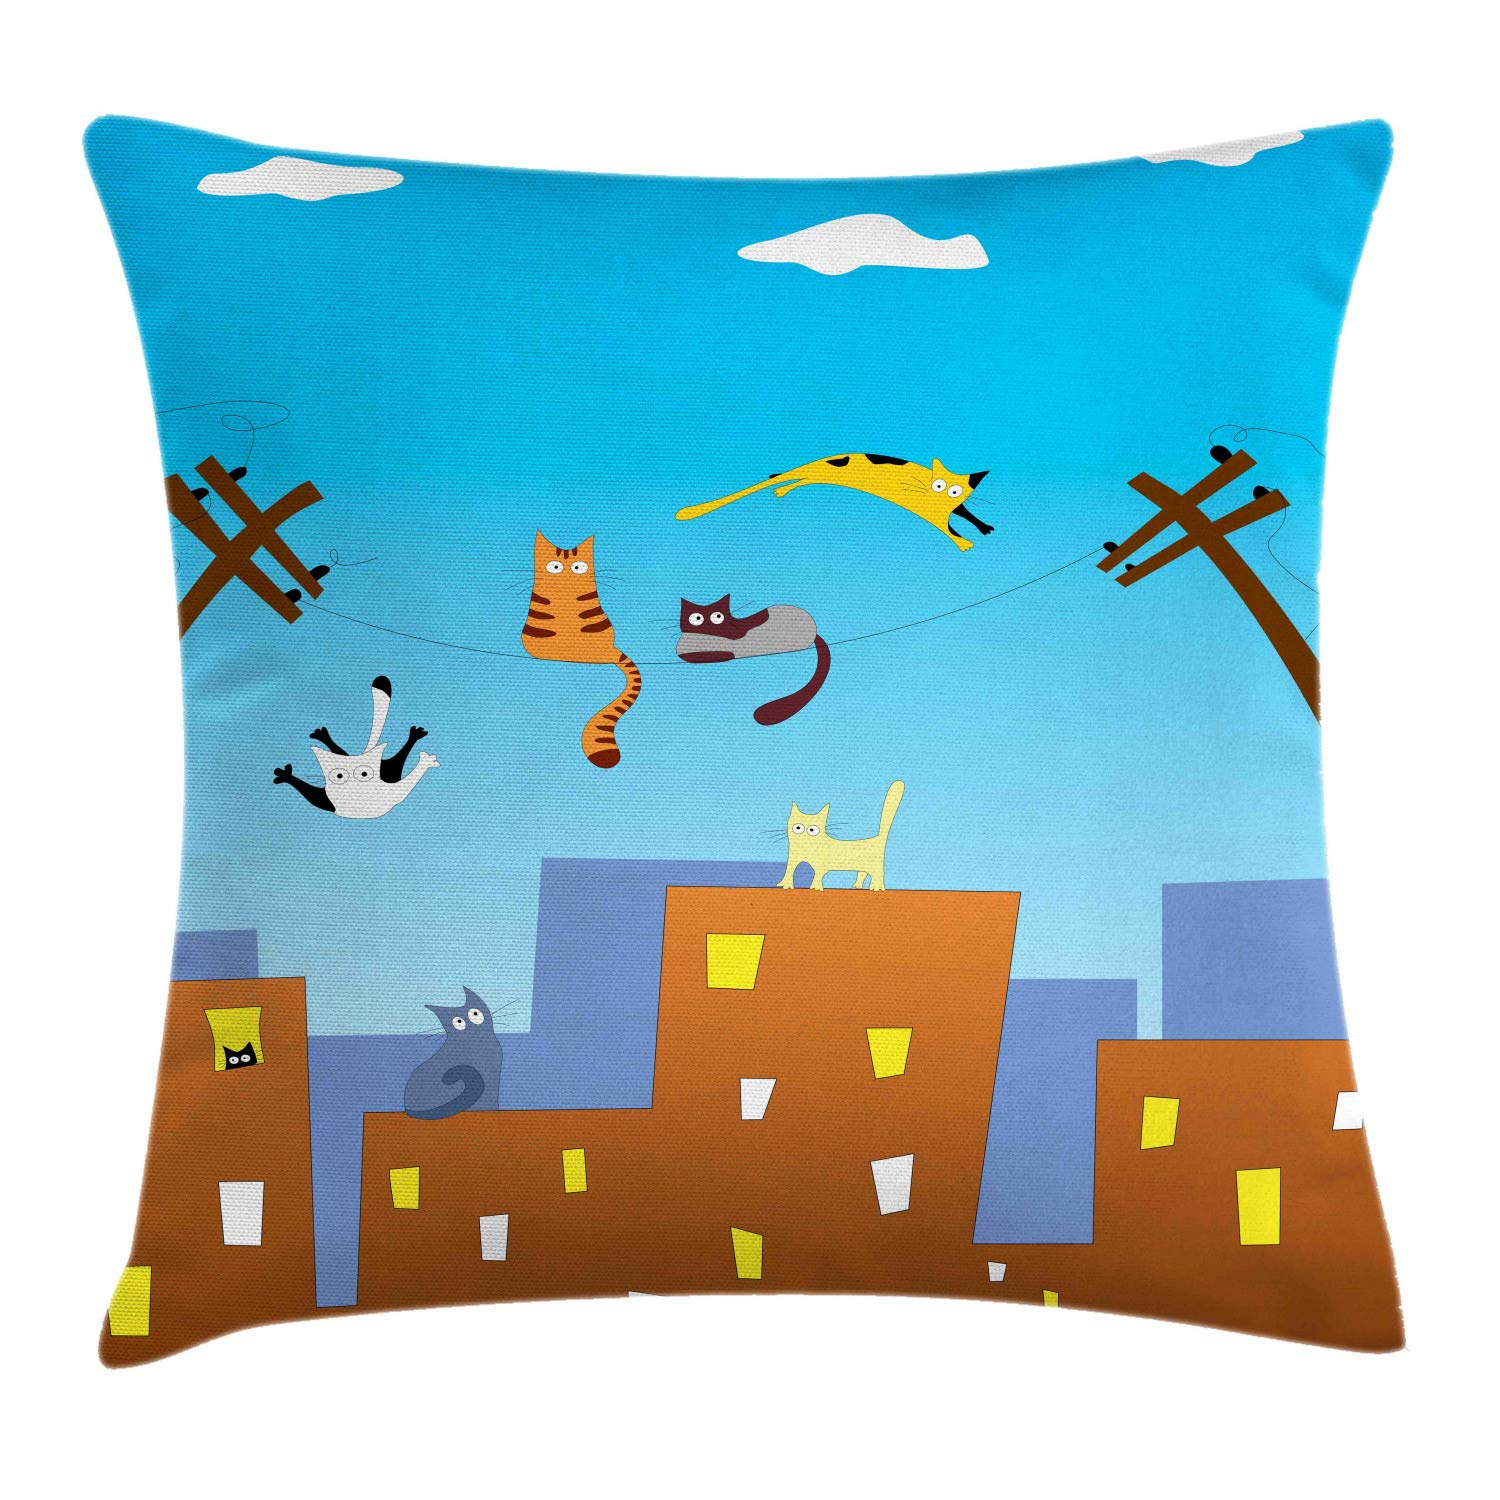 Lunarable Flying Cat Throw Pillow Cushion Cover, Playful Funny Kittens on Wires City Life Apartments Kids Nursery Playroom Theme, Decorative Square Accent Pillow Case, 26'' X 26'', Multicolor by Lunarable